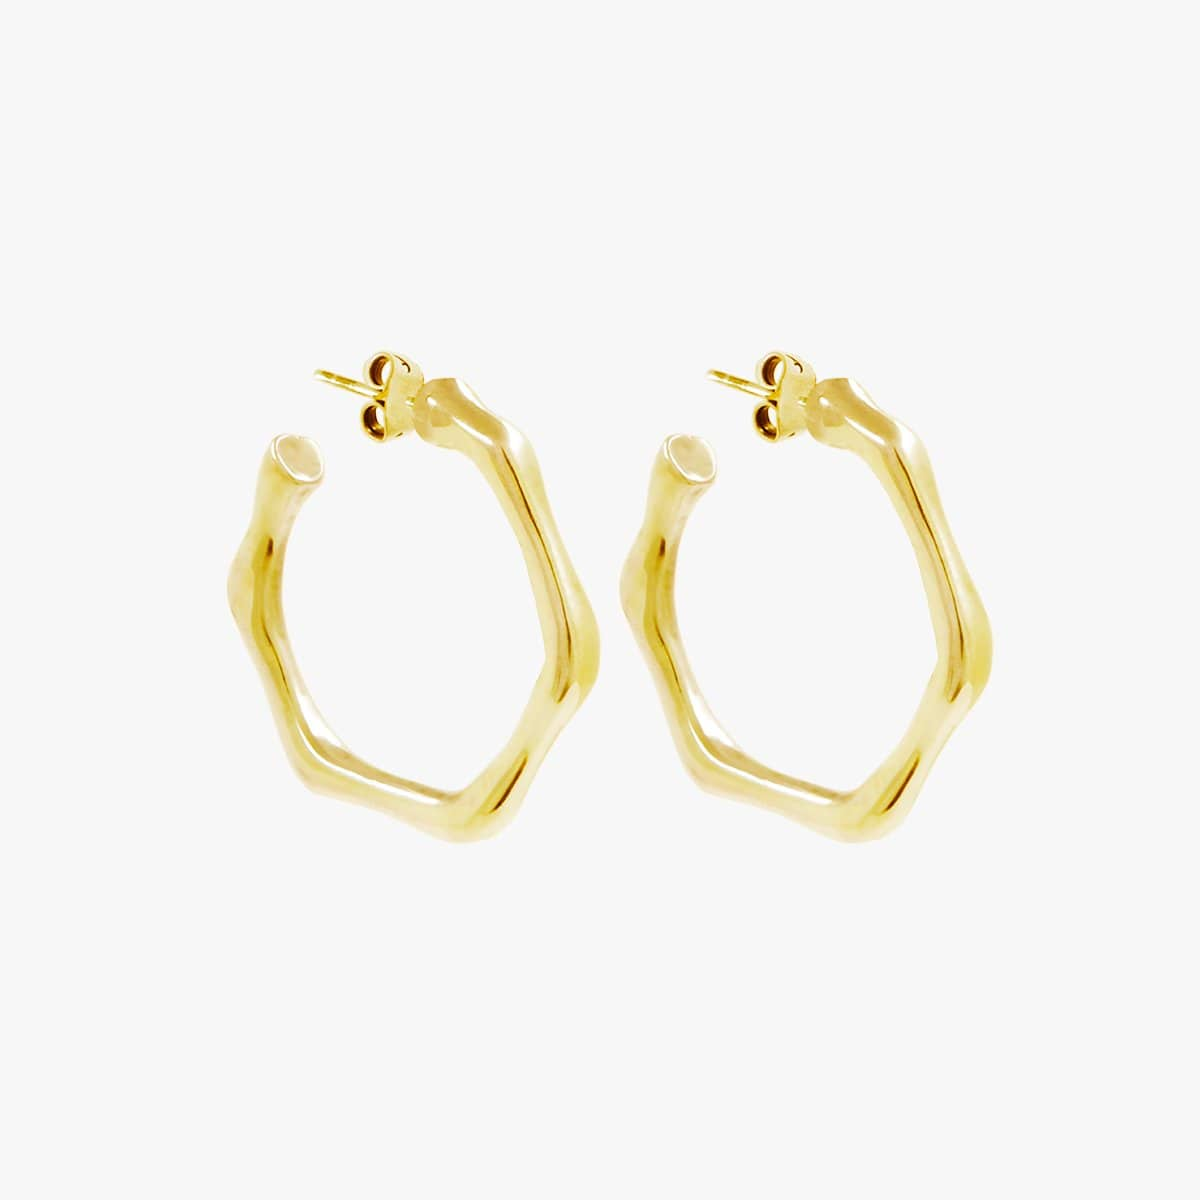 Gold Plated Earrings - E0060 ORO-CXC-Renee Taylor Gallery